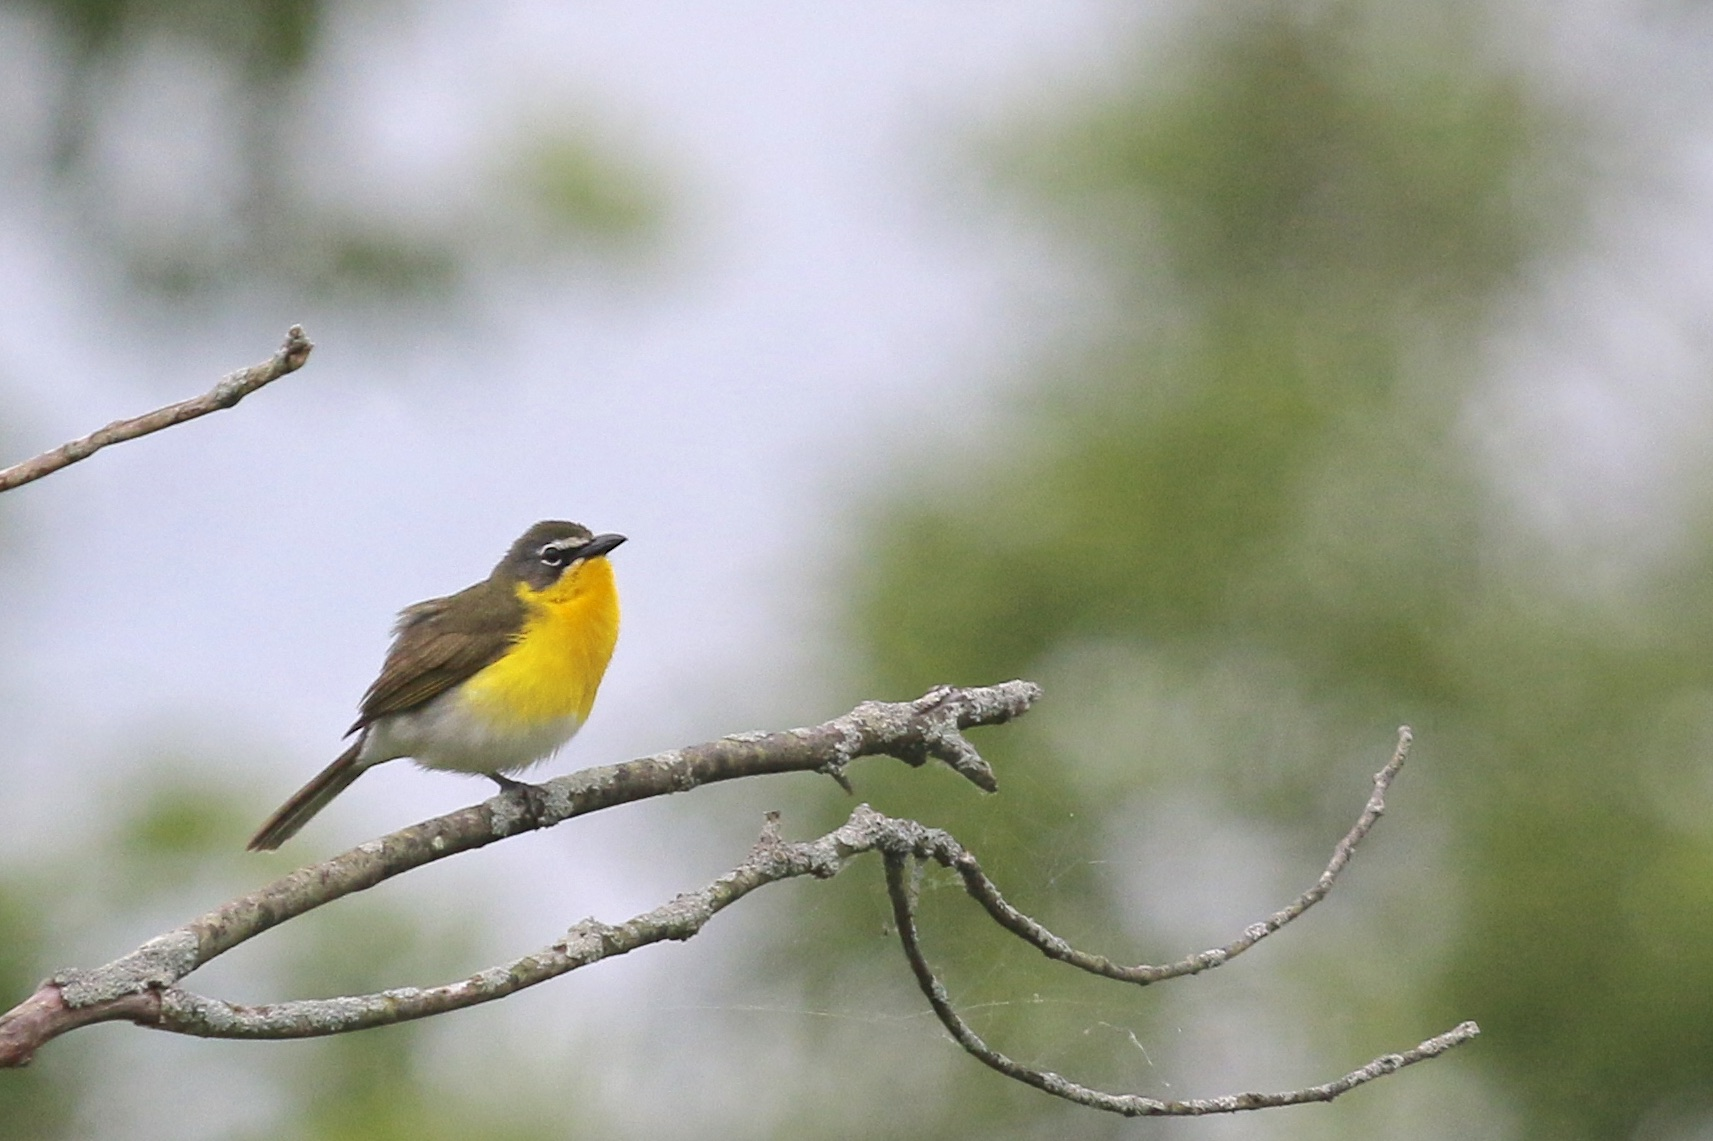 ~YELLOW-BREASTED CHAT cooperating for a photo! Hopeland Sanctuary, Staatsburg NY 6/615.~